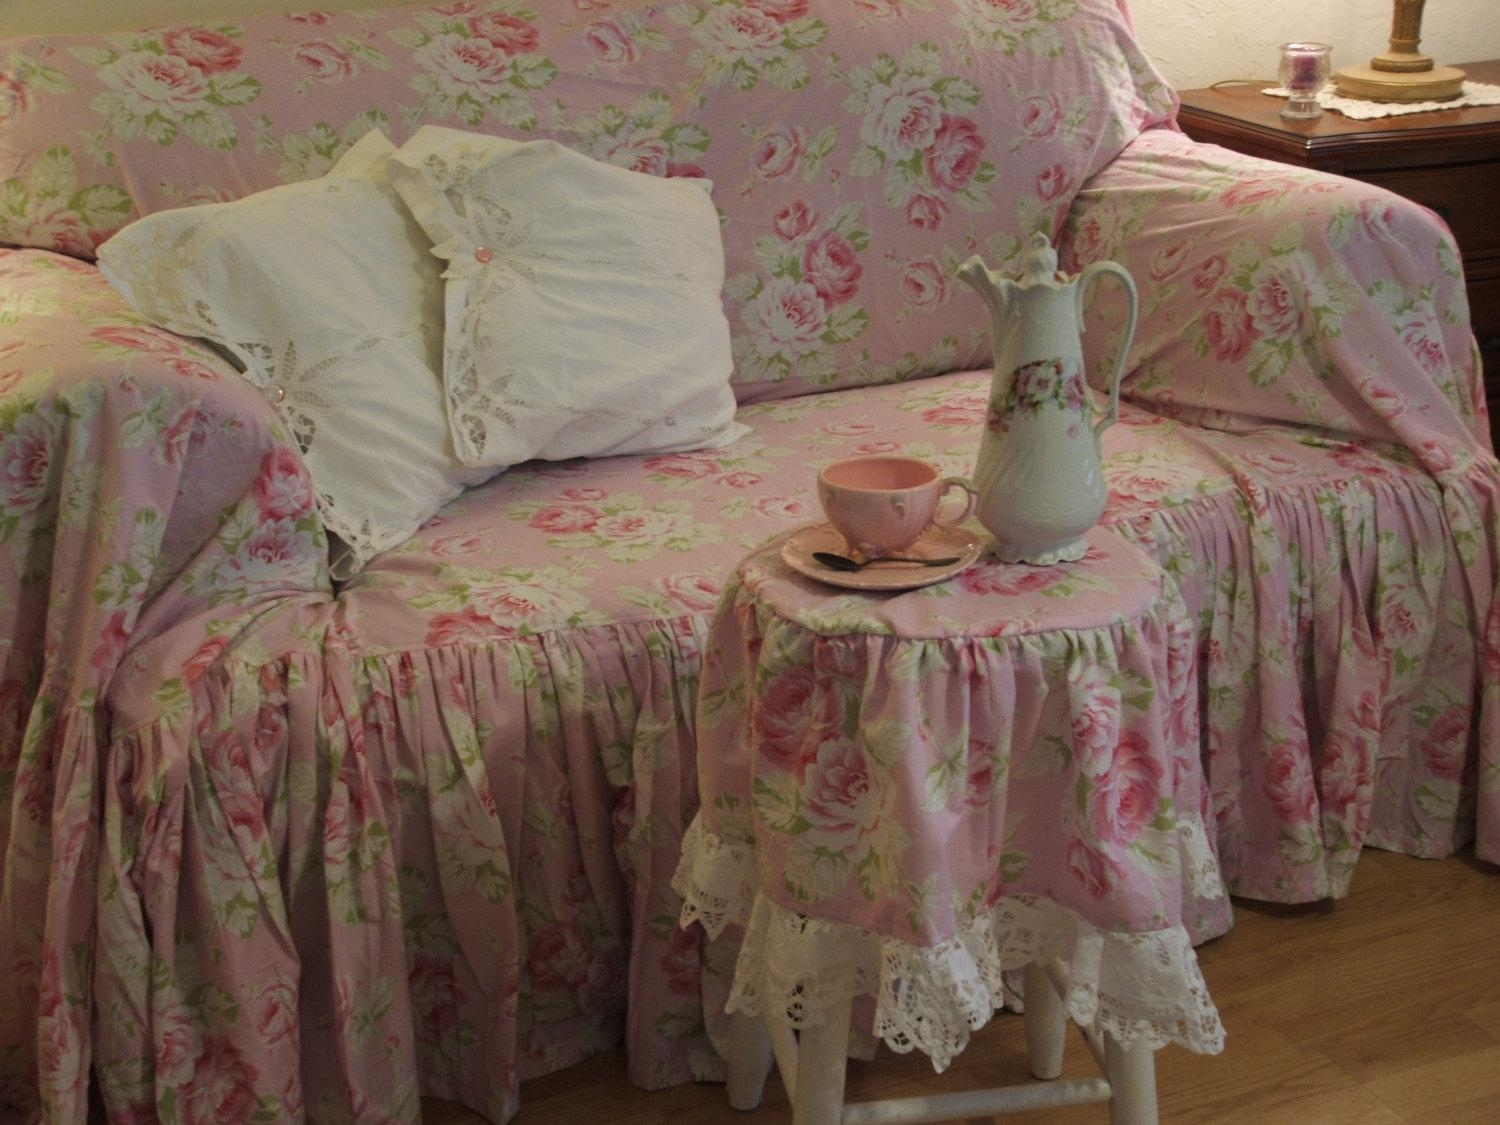 Shabby Chic Slipcovers. Chic With Shabby Chic Slipcovers (View 11 of 20)